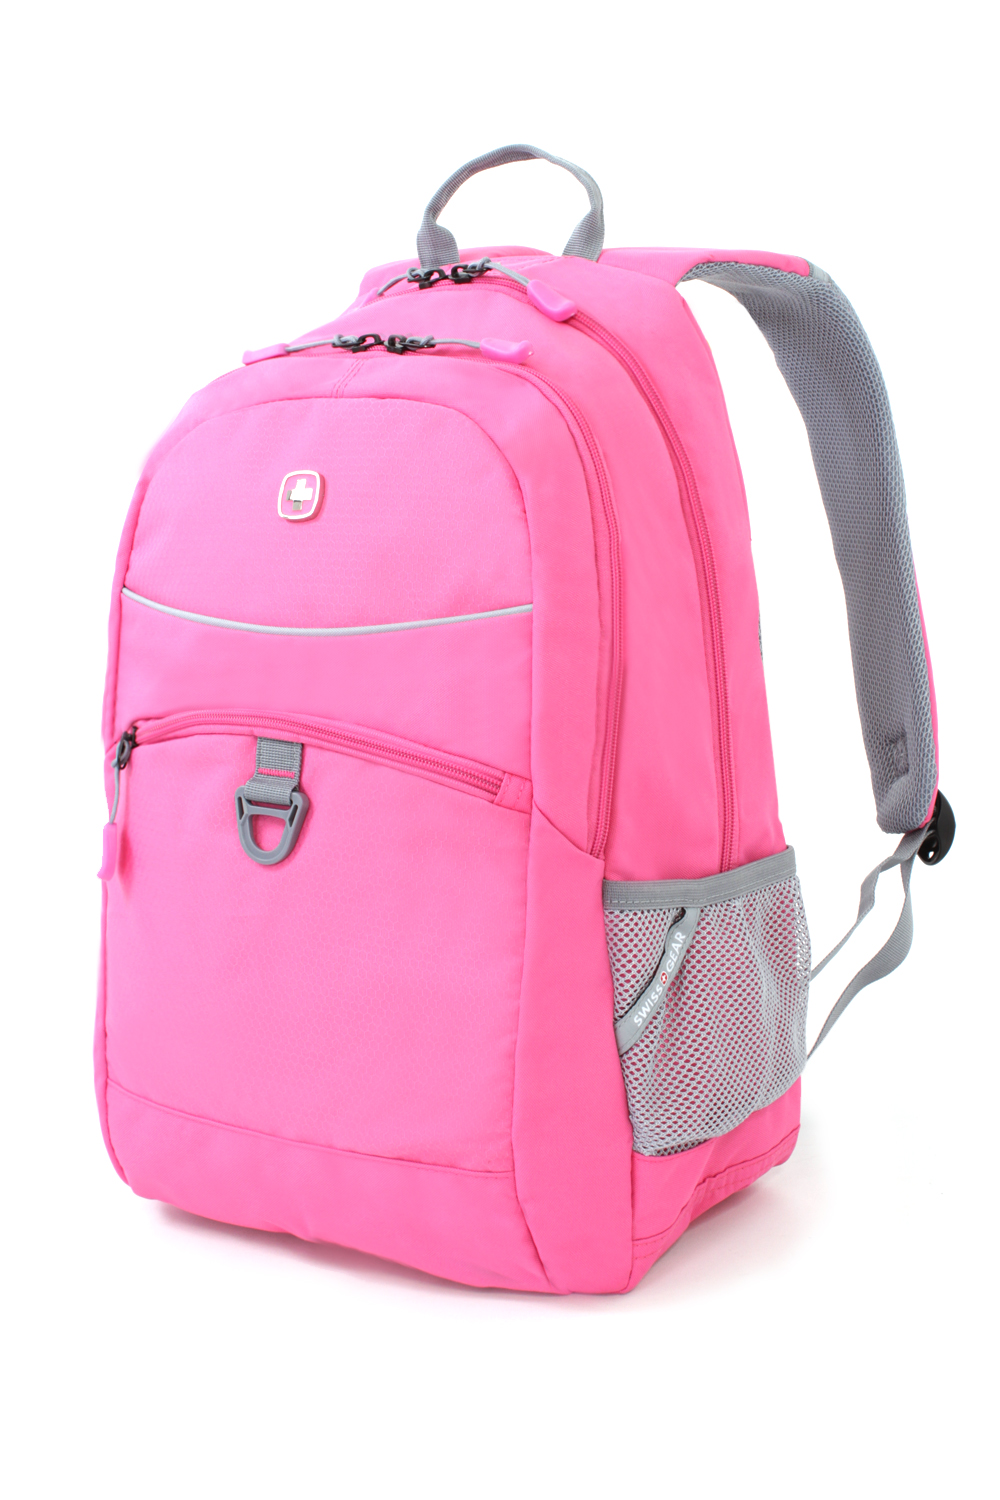 SWISSGEAR 6651 Backpack - Pink